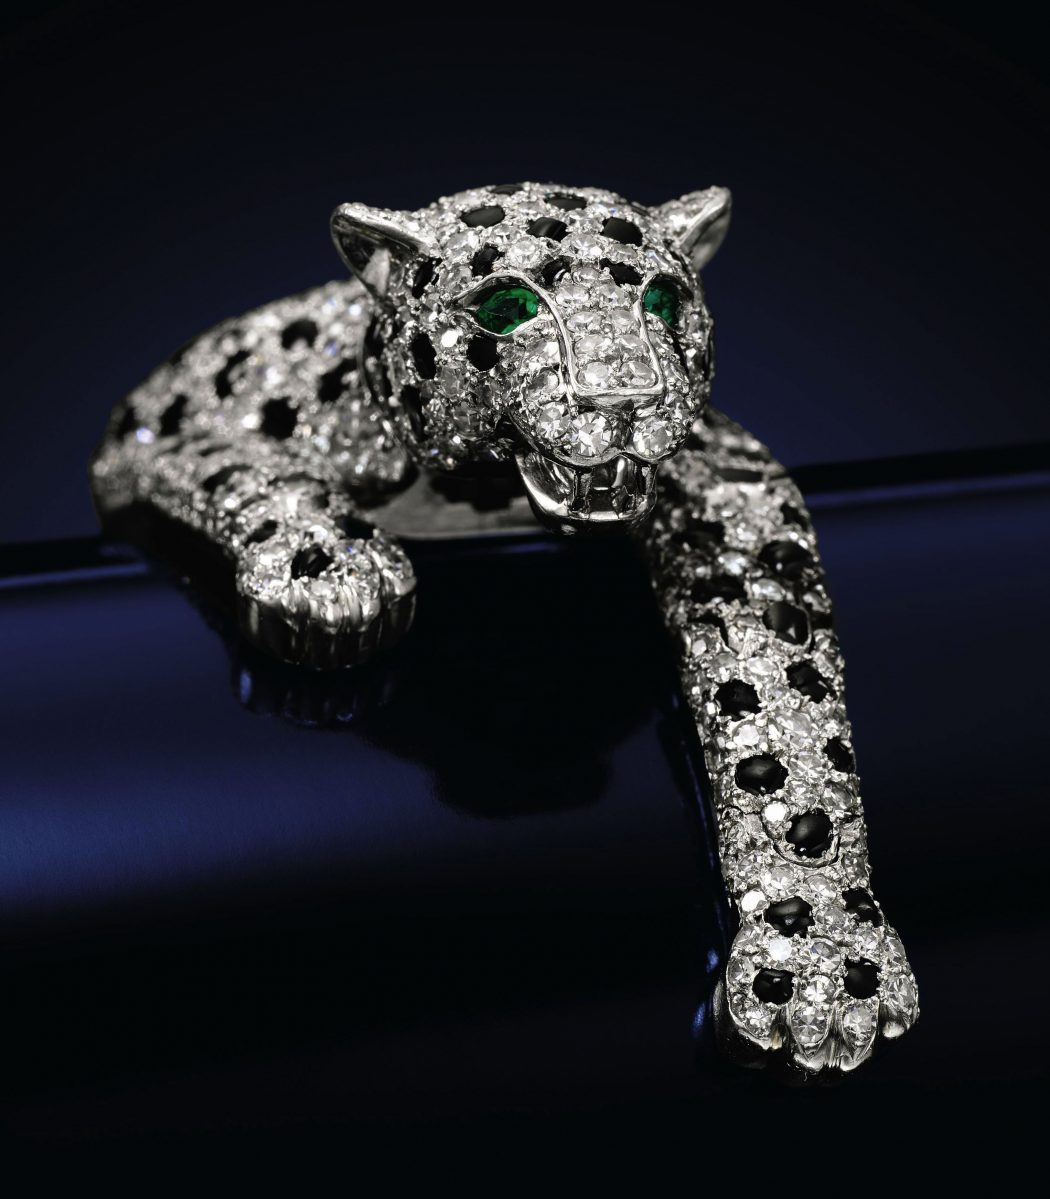 Panther Top 10 Most Expensive Artifacts in the World